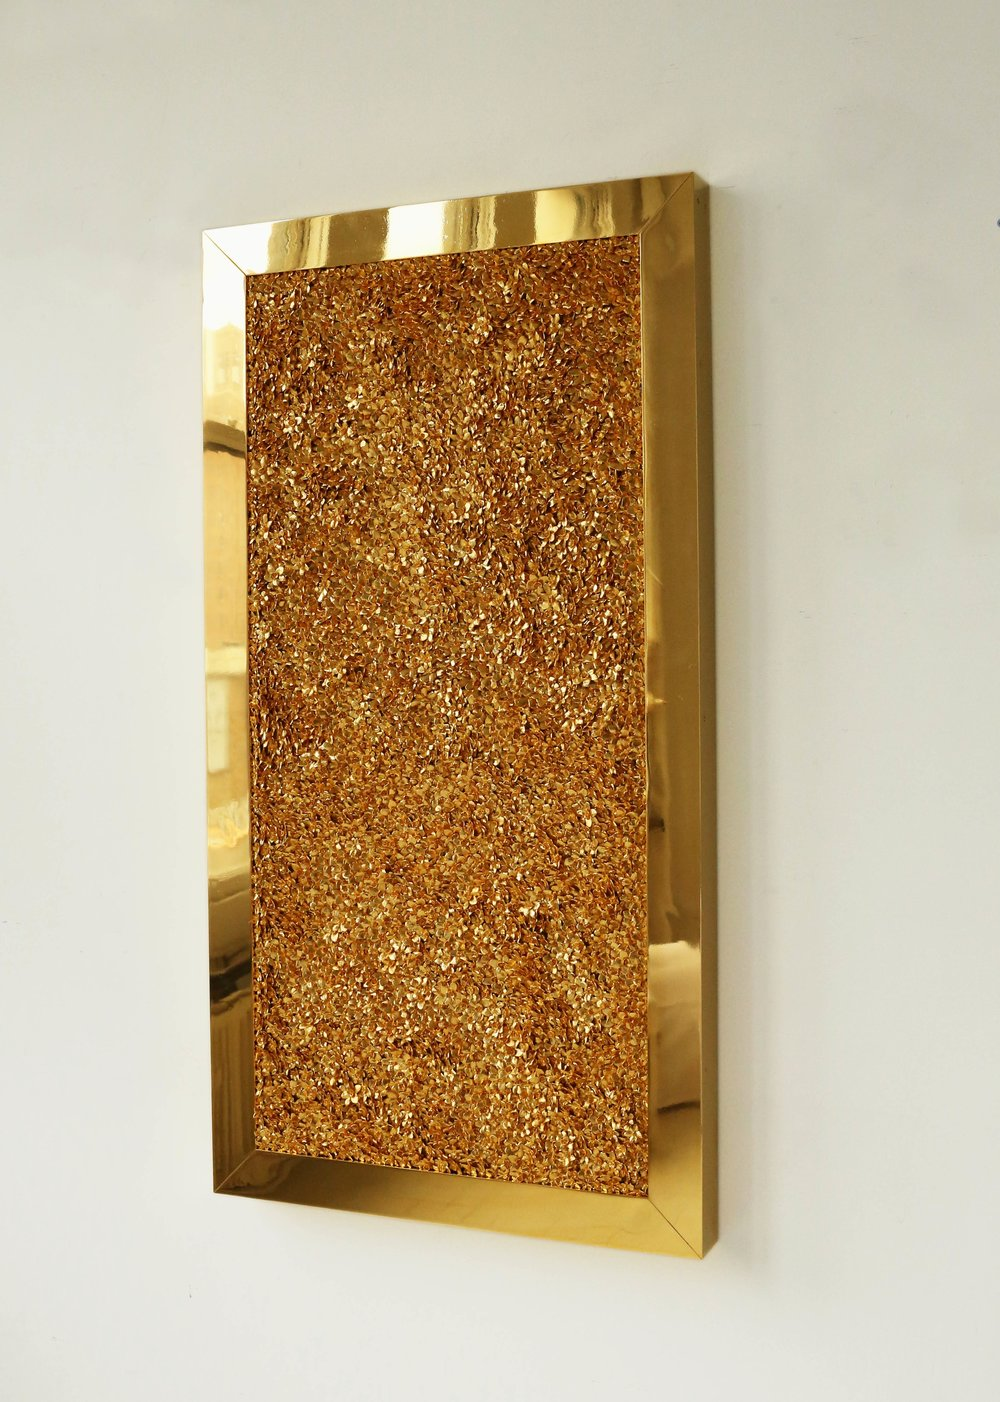 Gold Motherboard , 2013  Gold plated steel, gold plated cast metal, waxed cotton, in artist's frame  57 x 30 inches